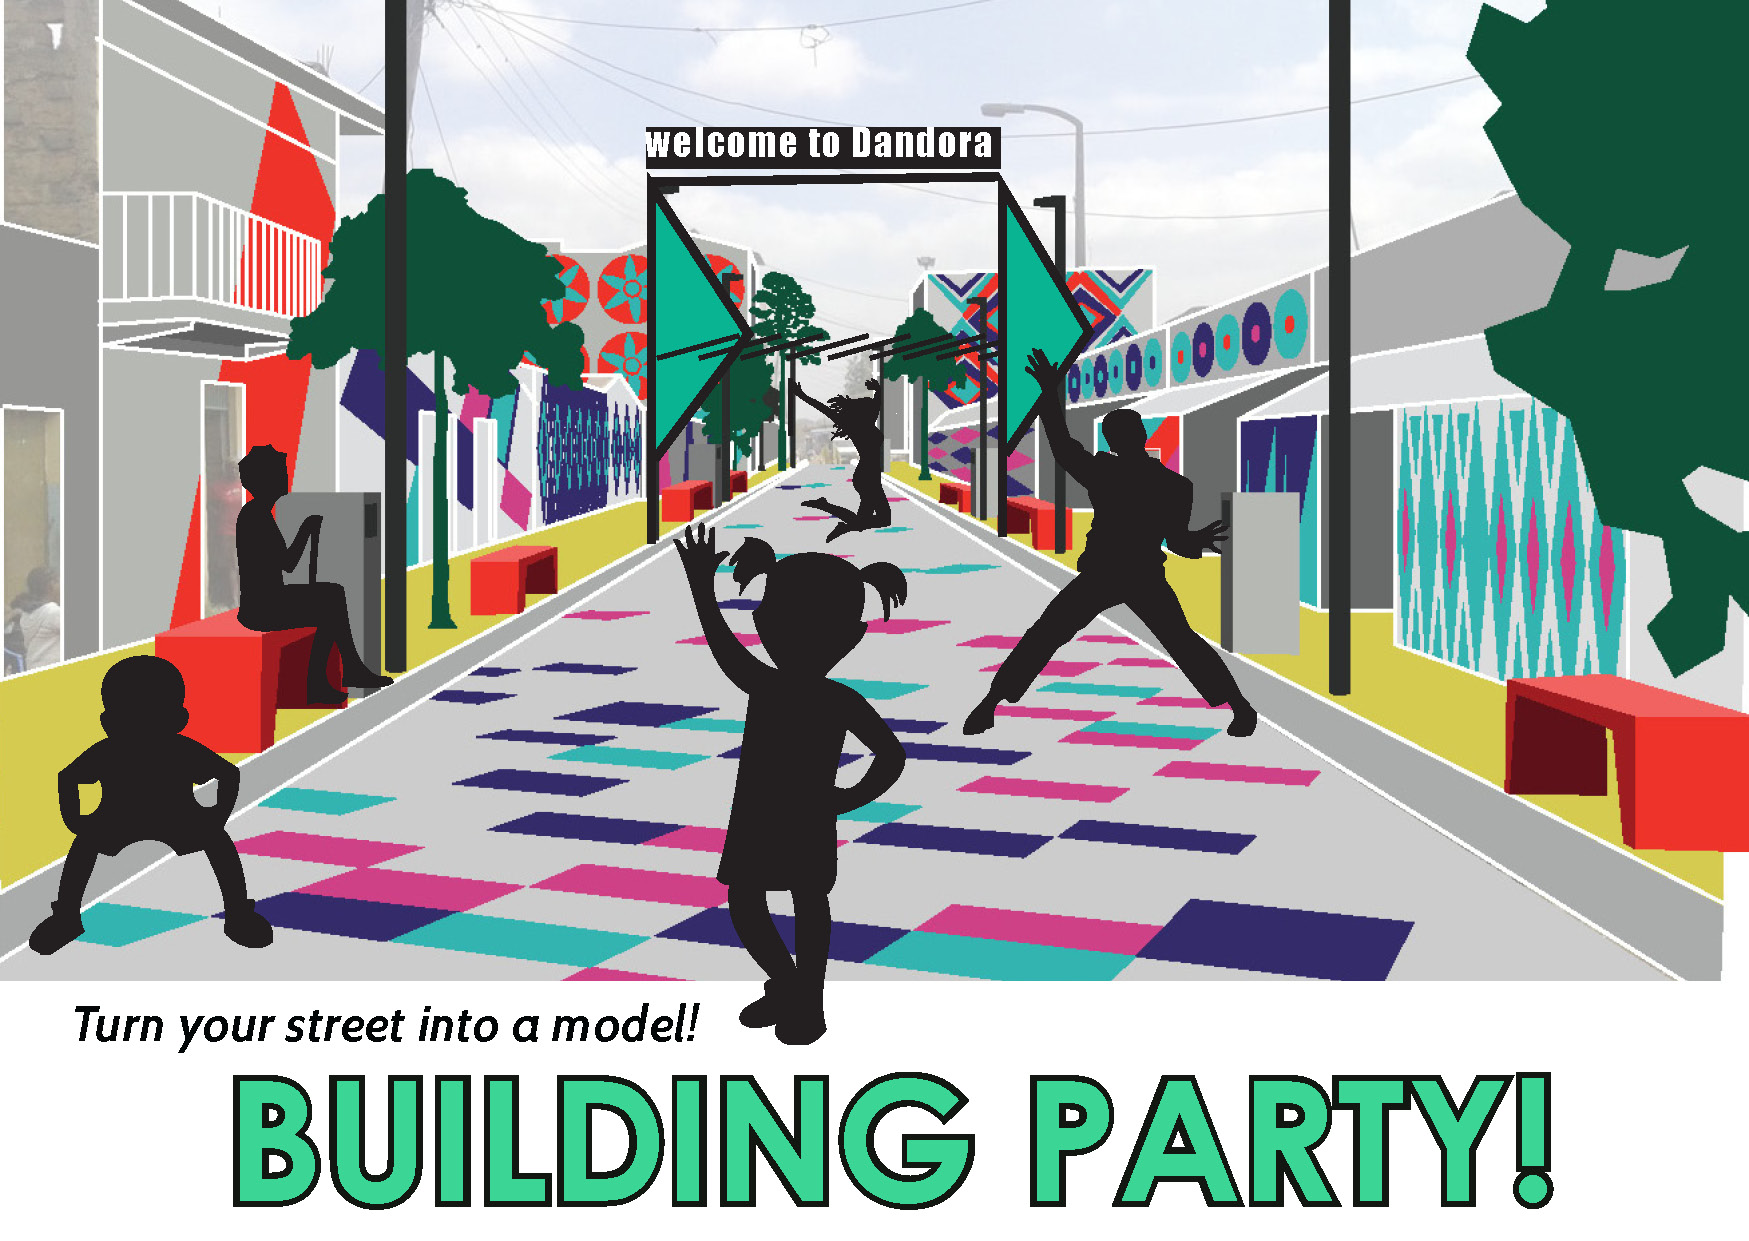 Building Party Modelstreet 160620-principles-hres_Page_1